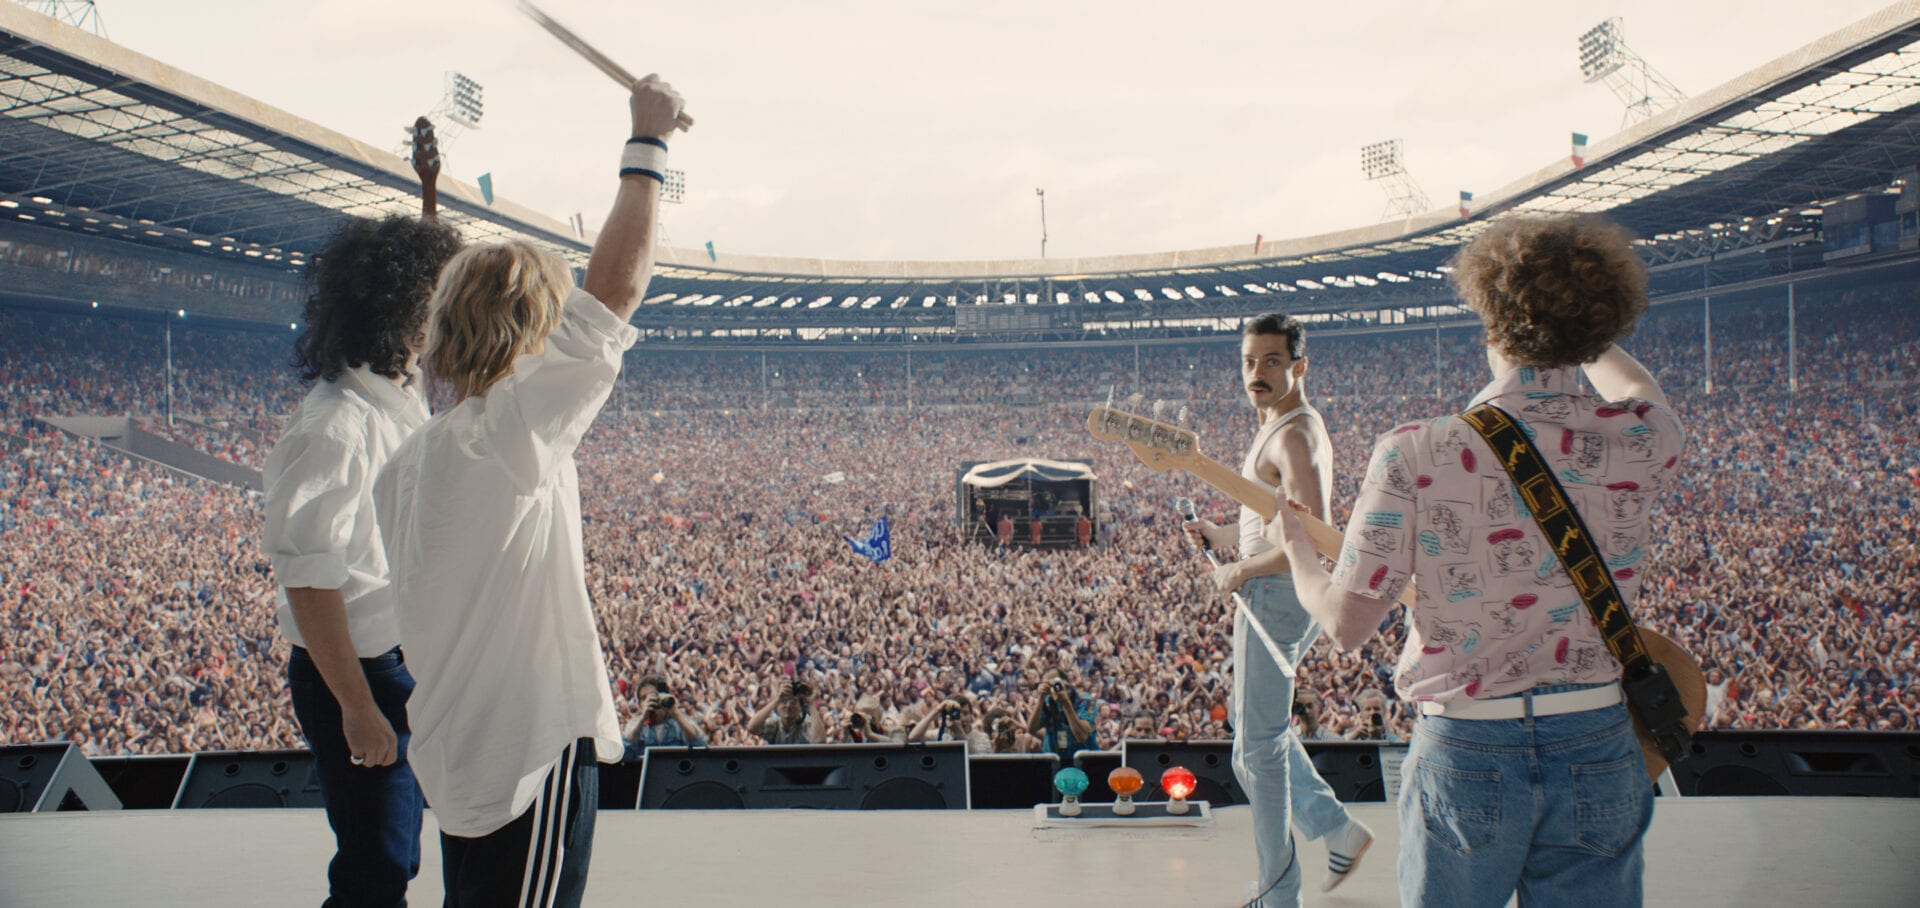 bohemian rhapsody queen live aid wembley stadium